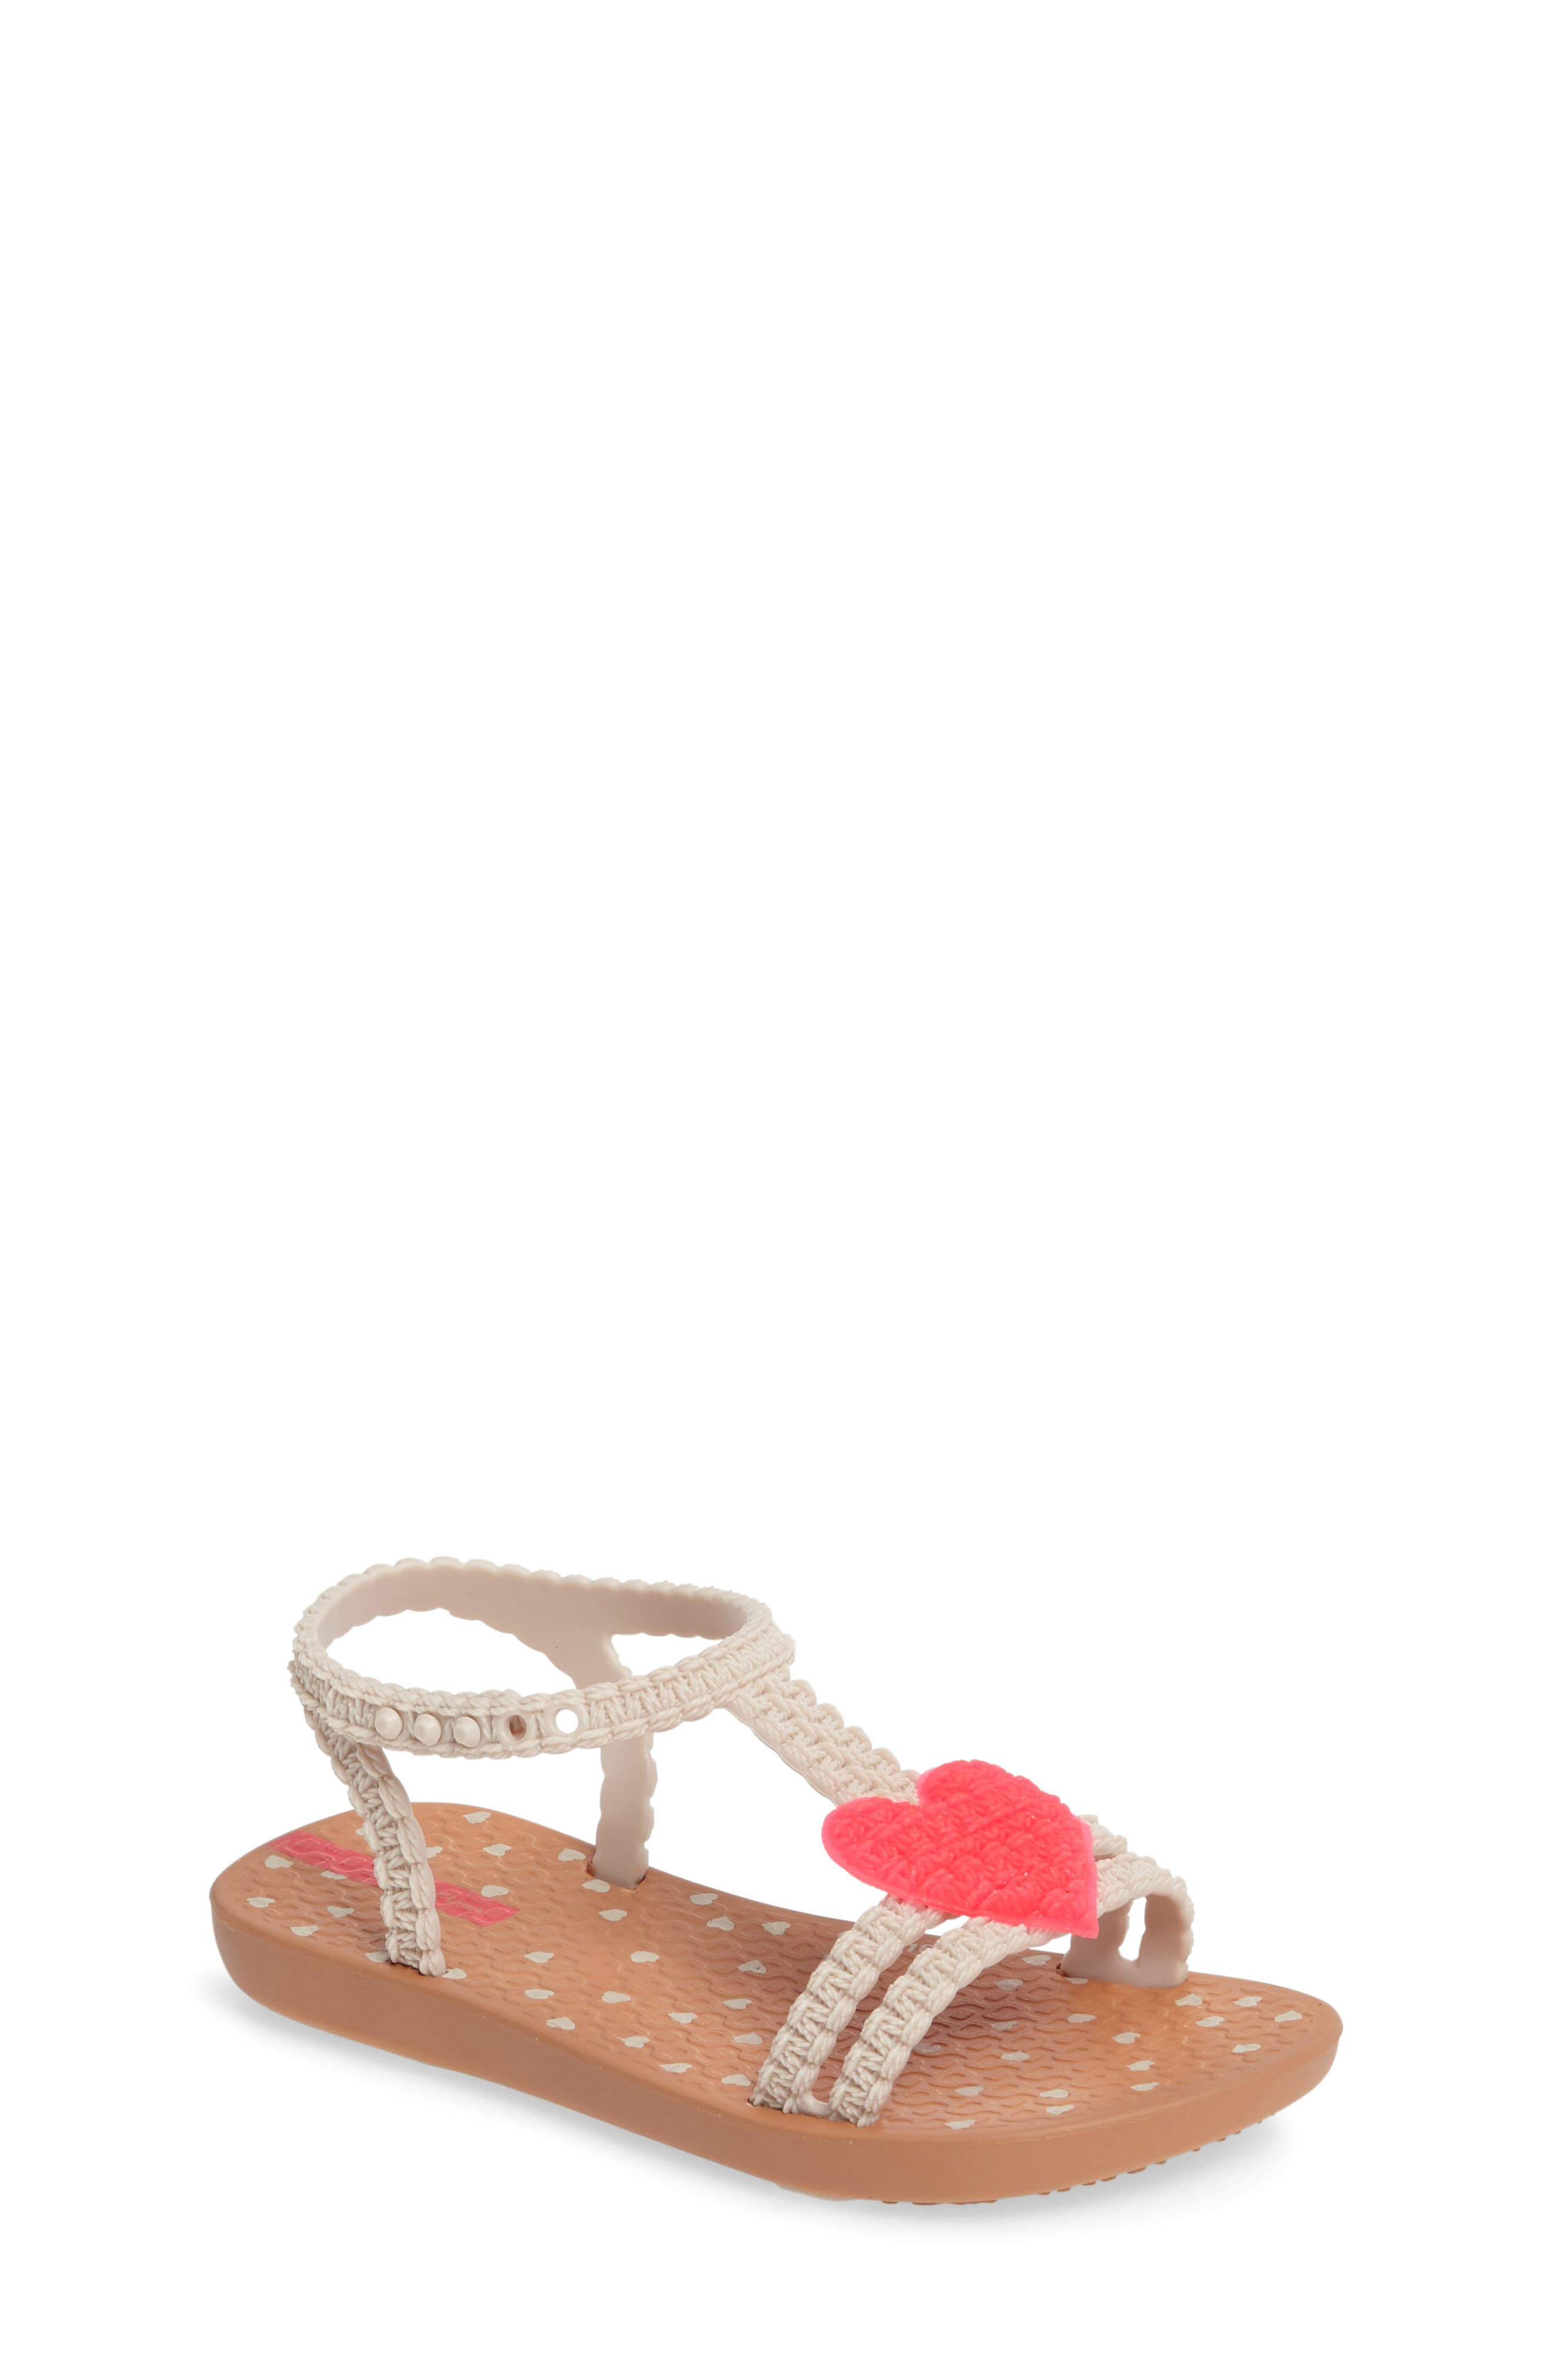 Alternate Image 1 Selected - Ipanema My First Ipanema Sandal (Walker & Toddler)